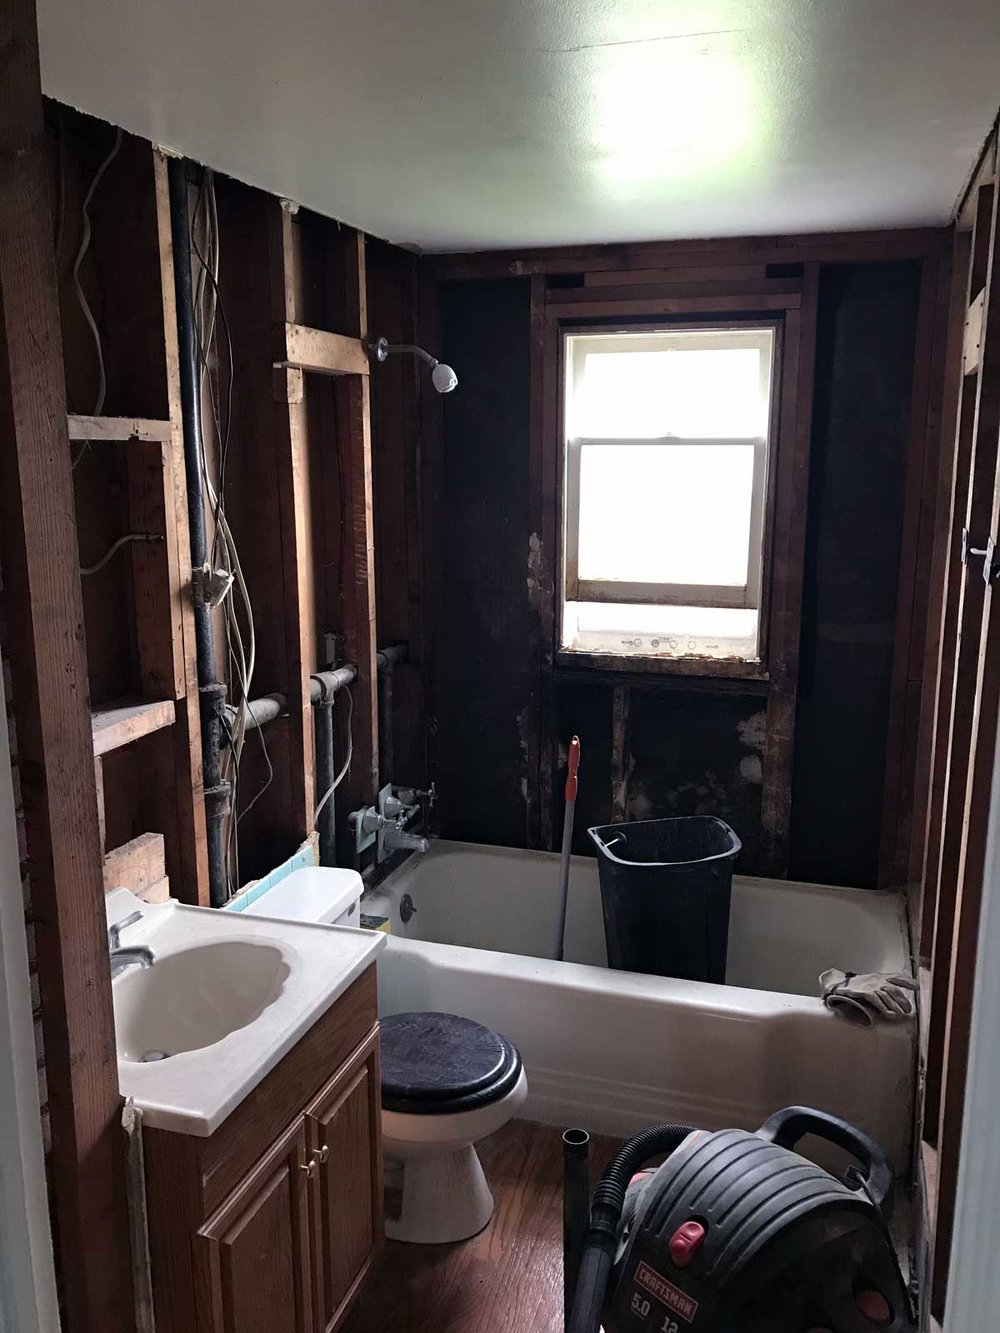 15-Day-Bathroom-Renovation-07.jpg